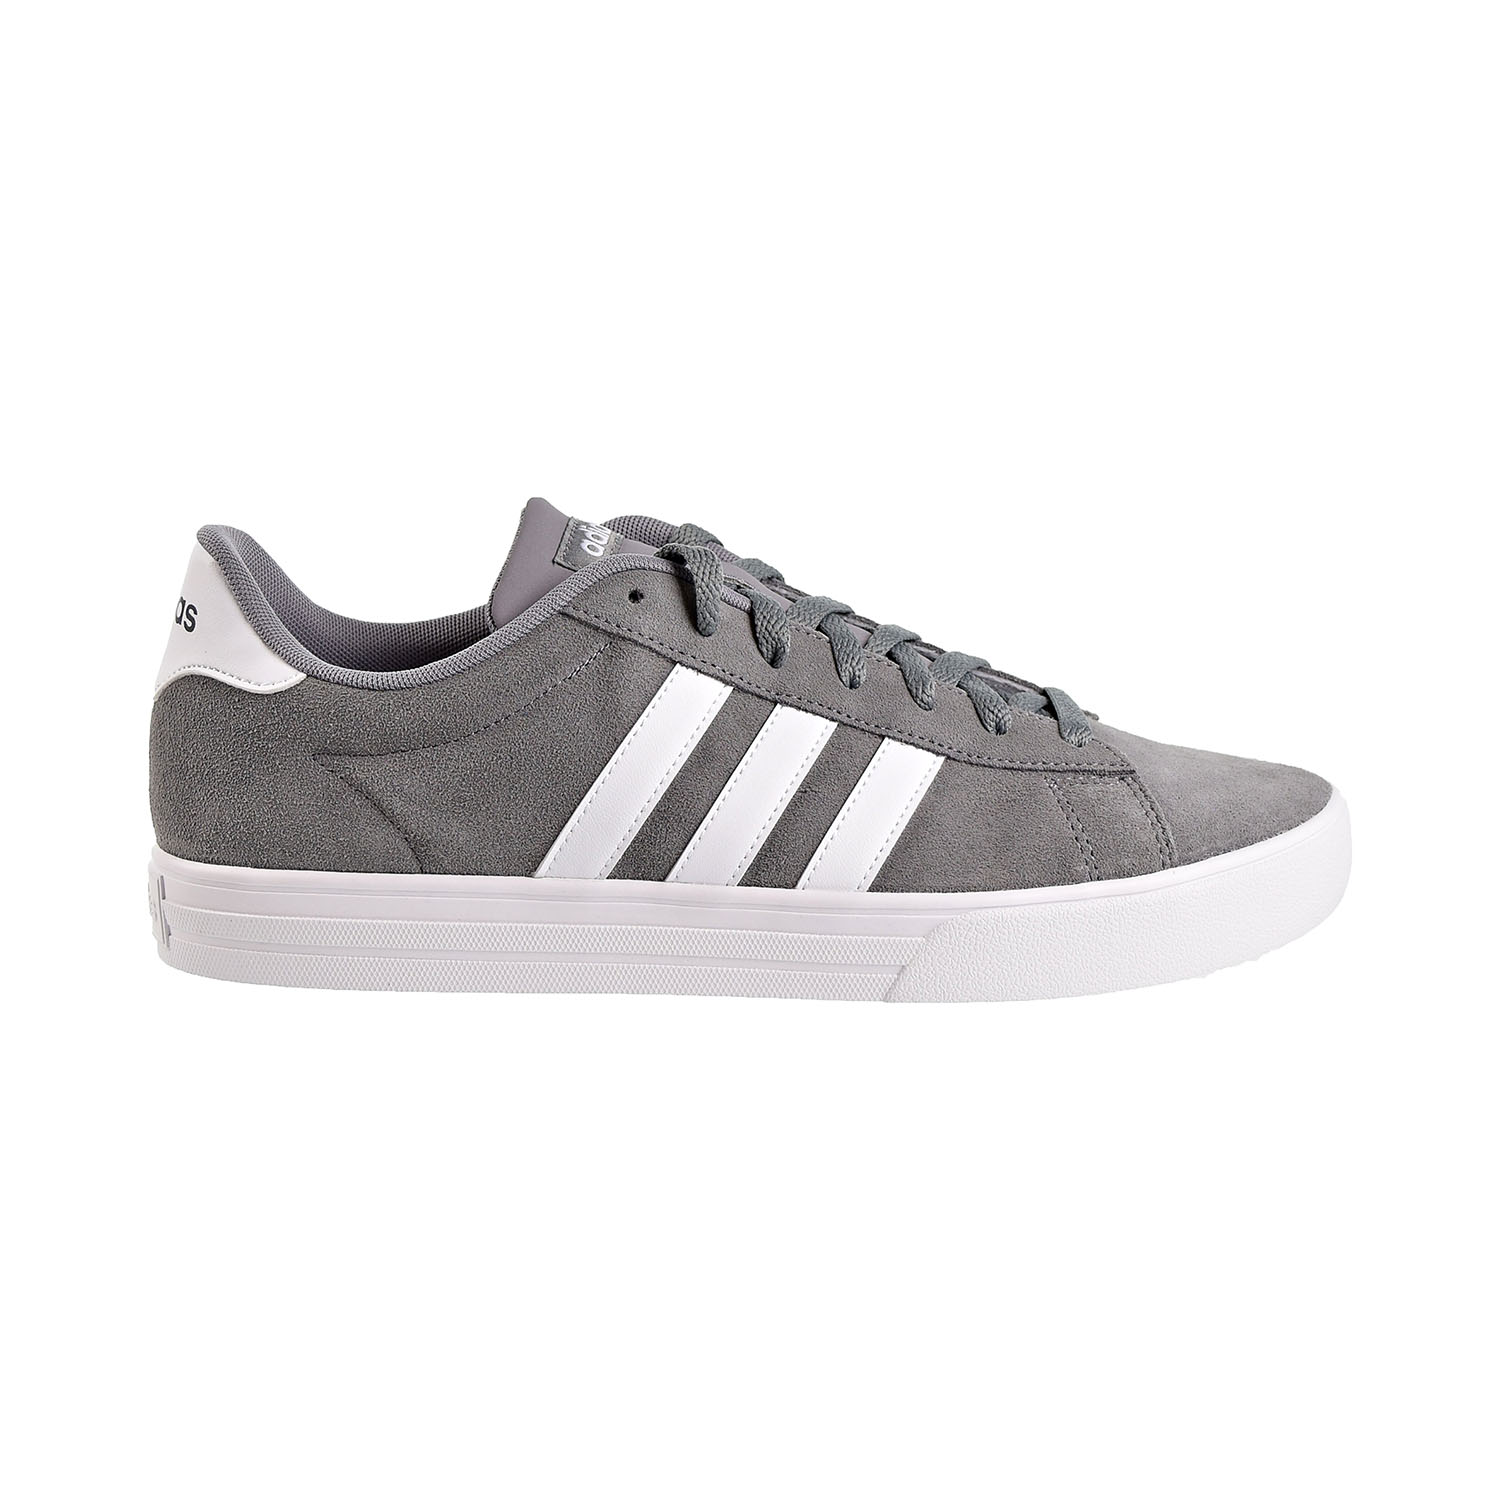 Adidas Daily 2.0 Suede Mens Shoes Grey